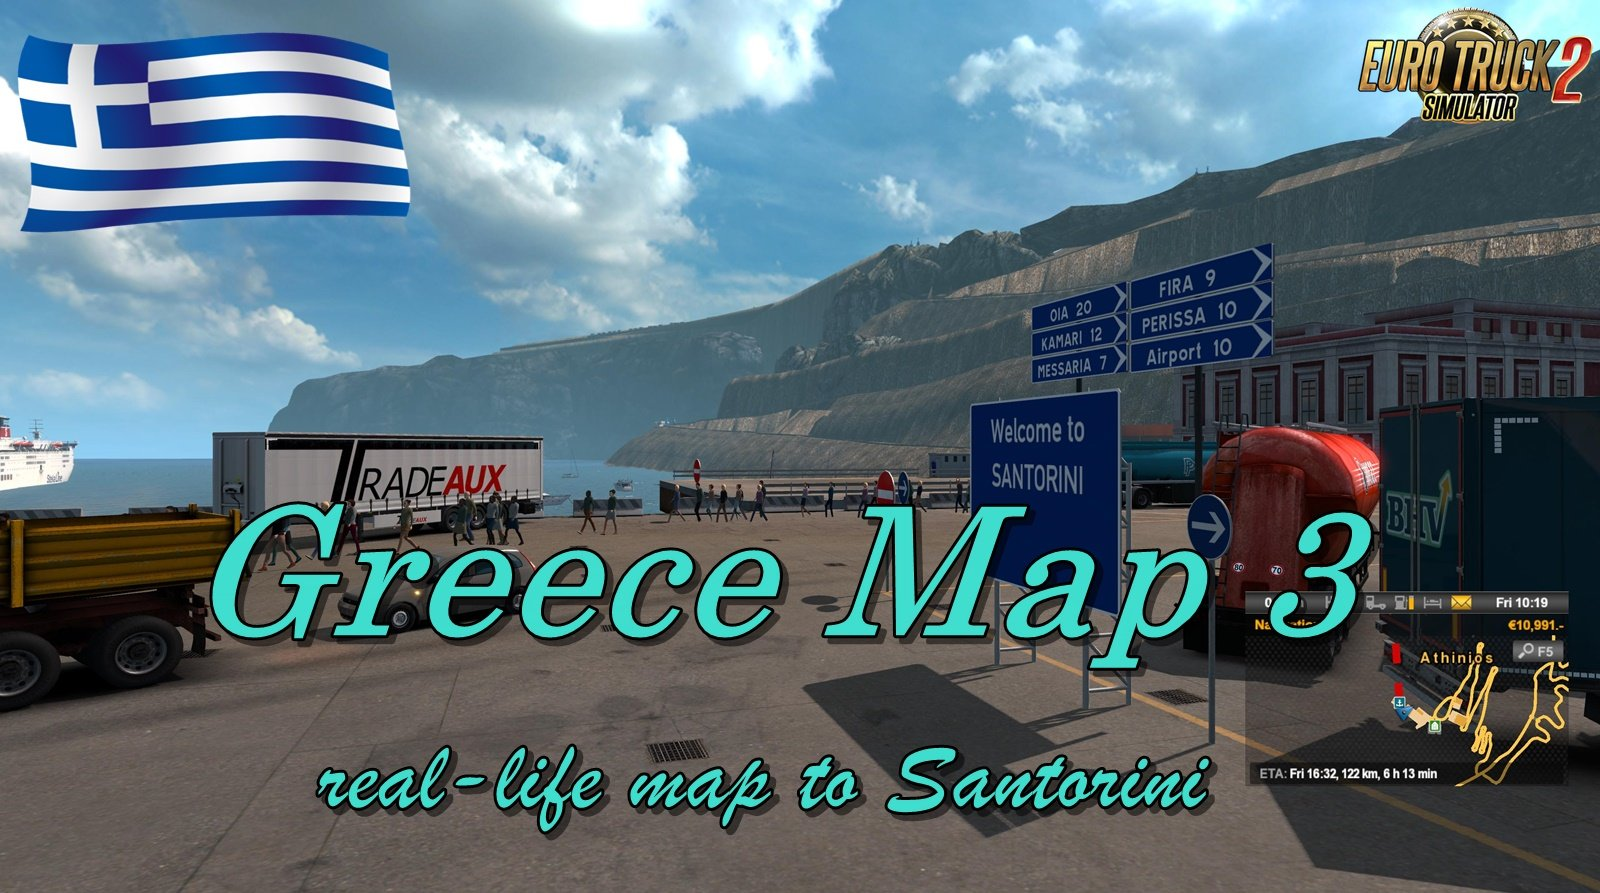 Greece Map 3 : Extending 1:1 real-life map to Santorini [1.33.x-1.34.x]